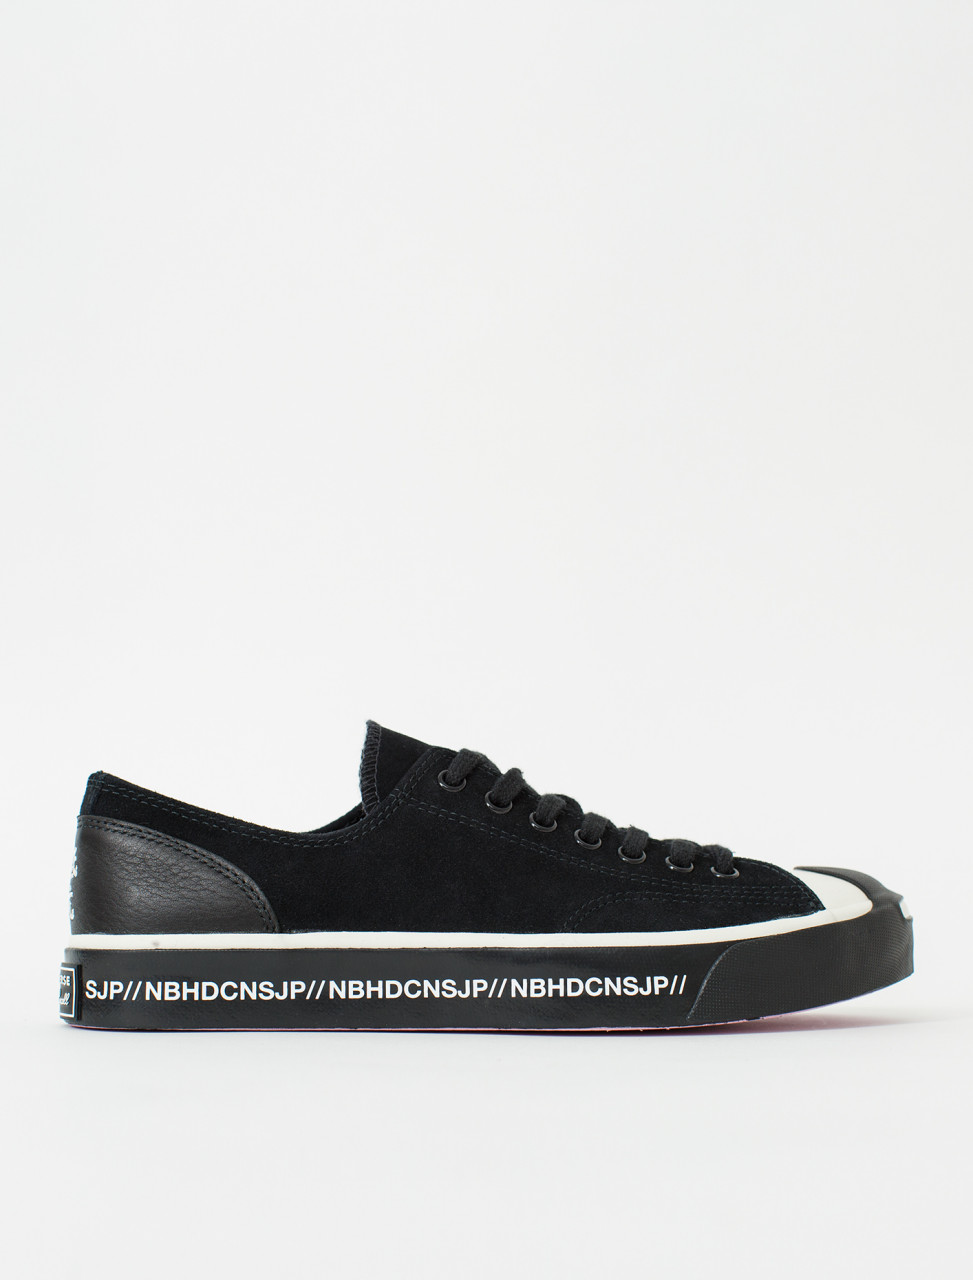 x Neighborhood Jack Purcell Oxford Sneaker